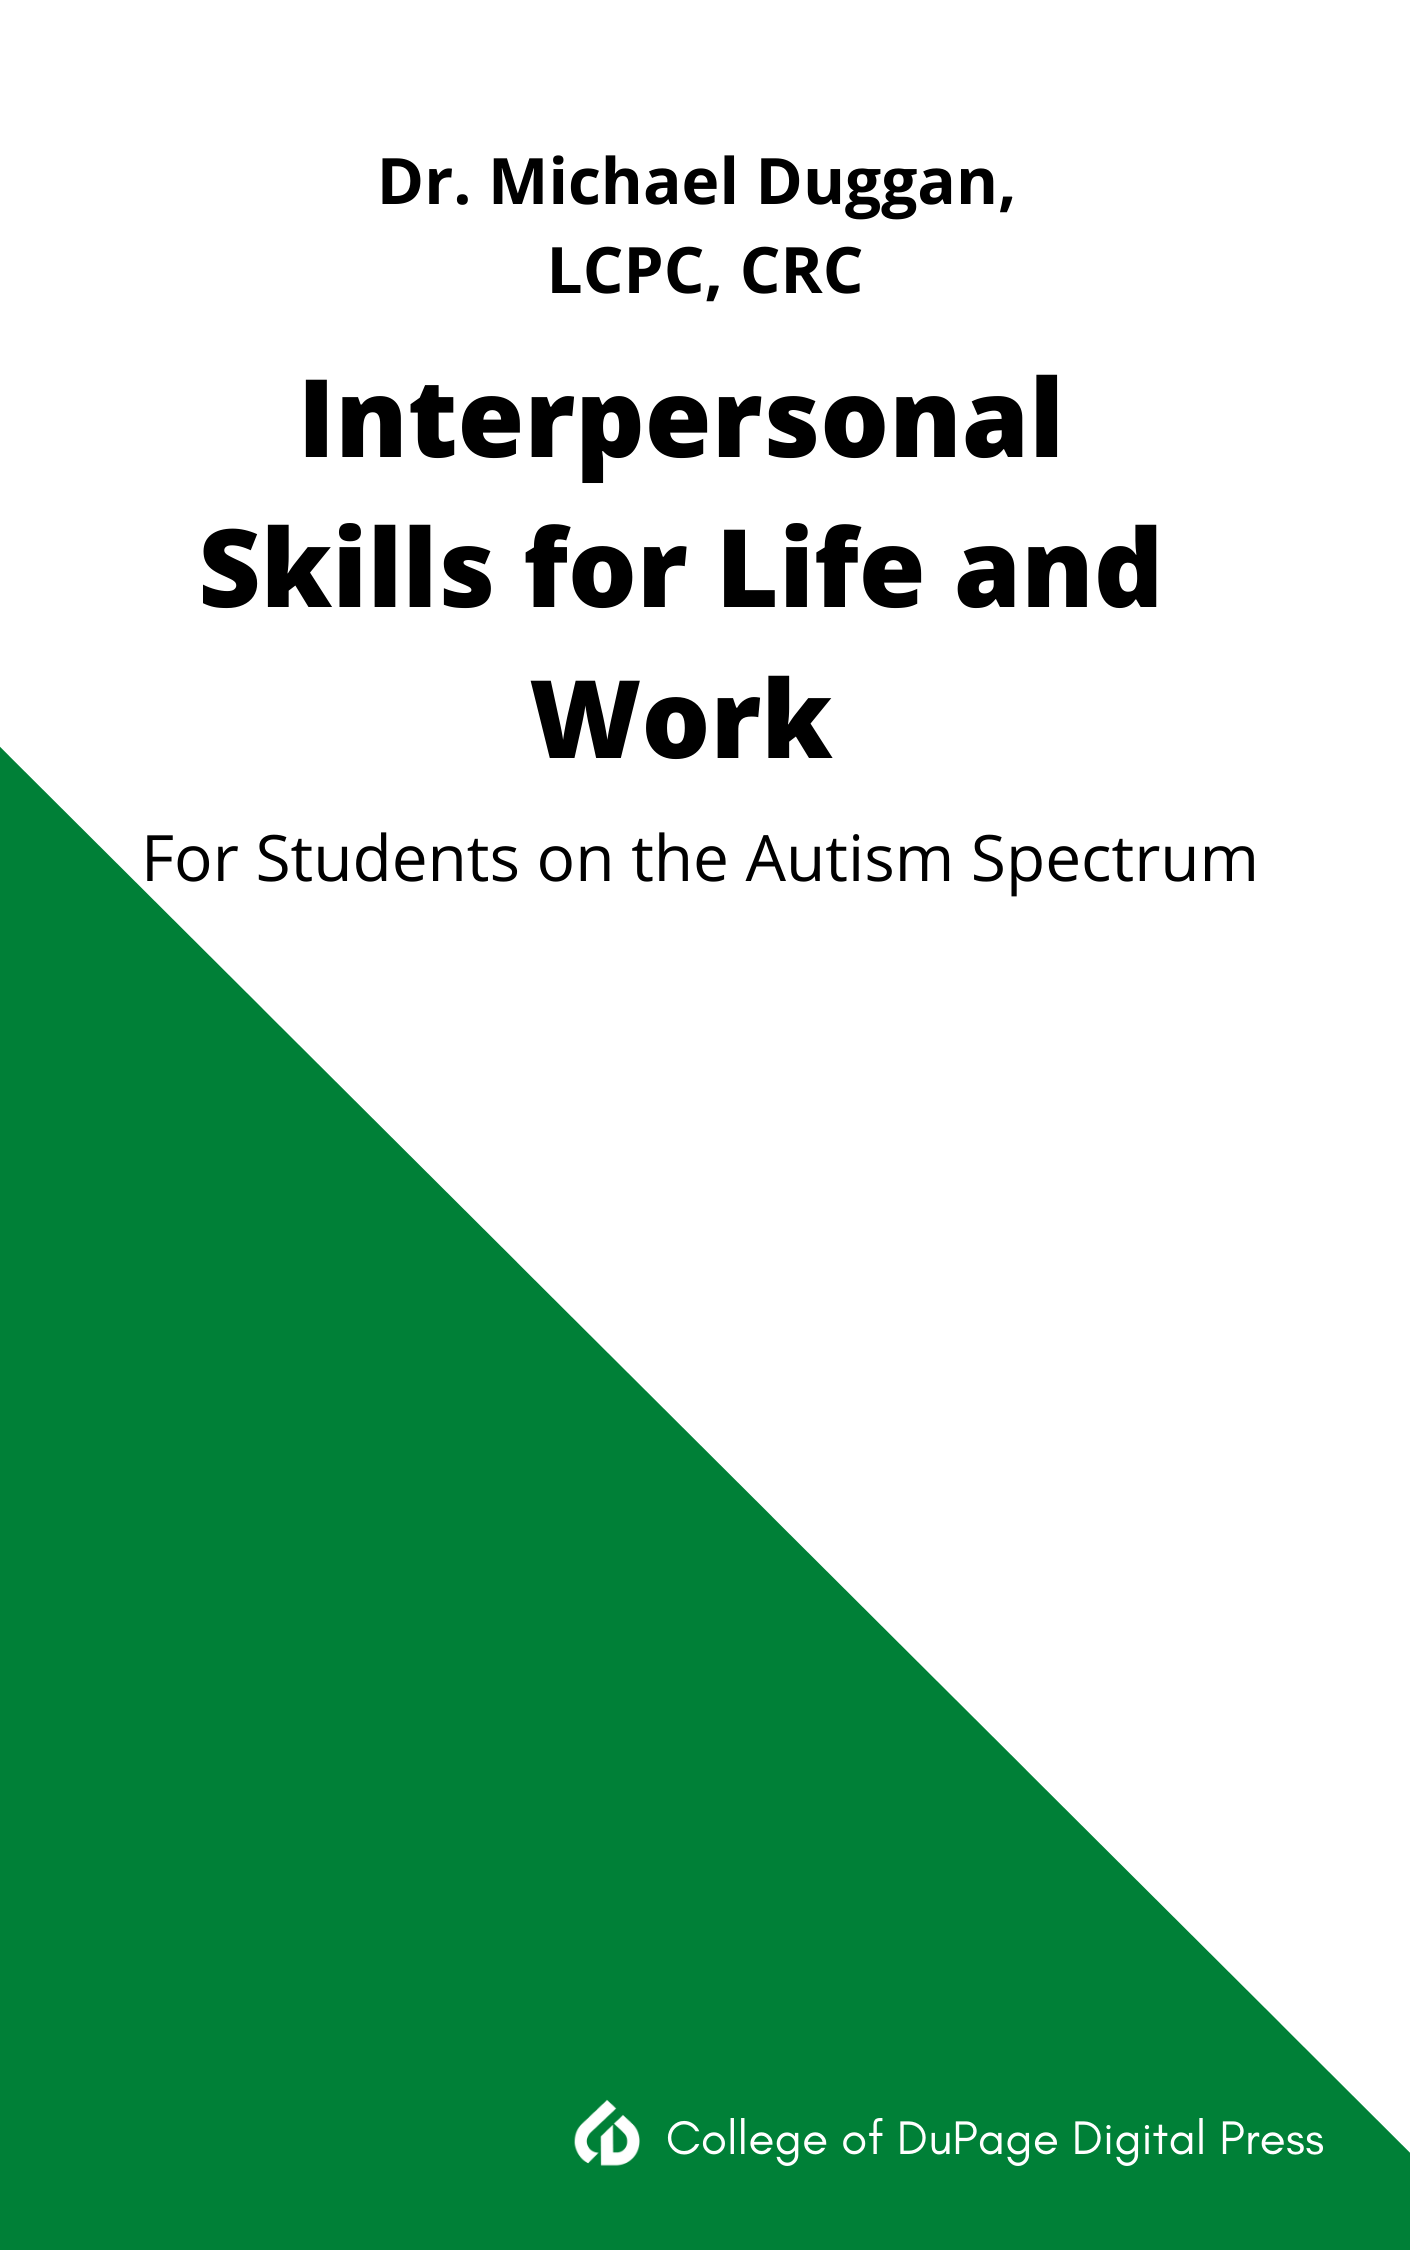 Cover image for Interpersonal Skills for Life and Work for College Students on the Autism Spectrum